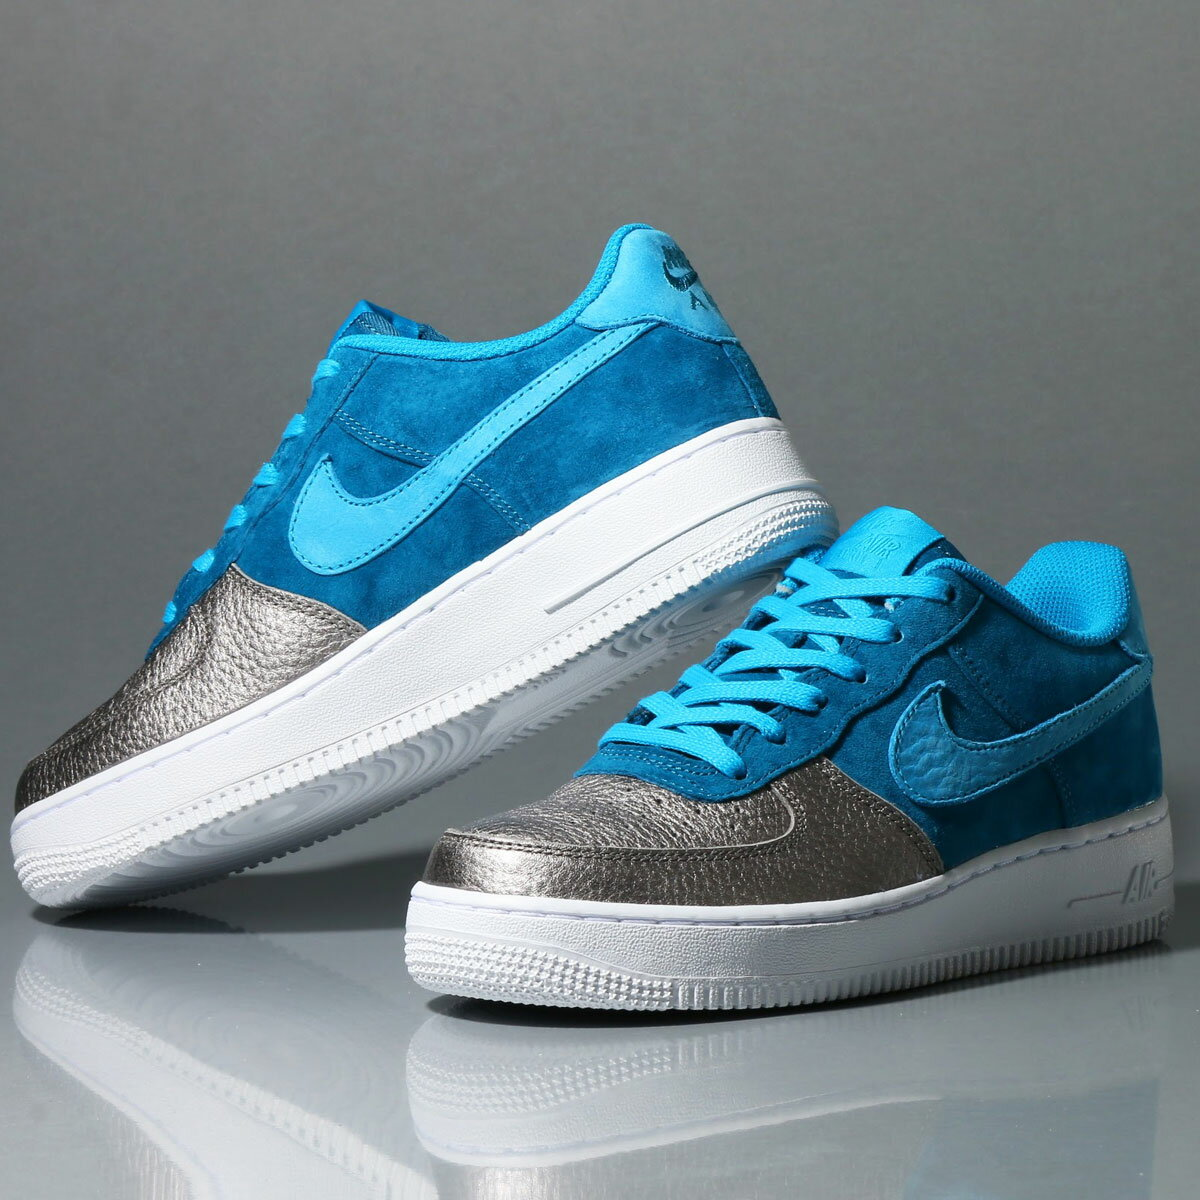 NIKE AIR FORCE 1 QS (GS) (ナイキ エア フォース 1 QS GS) GREEN ABYSS/LIGHT BLUE LACQUER/METALLIC PEWTER/WHITE【レディース スニーカー】17HO-S